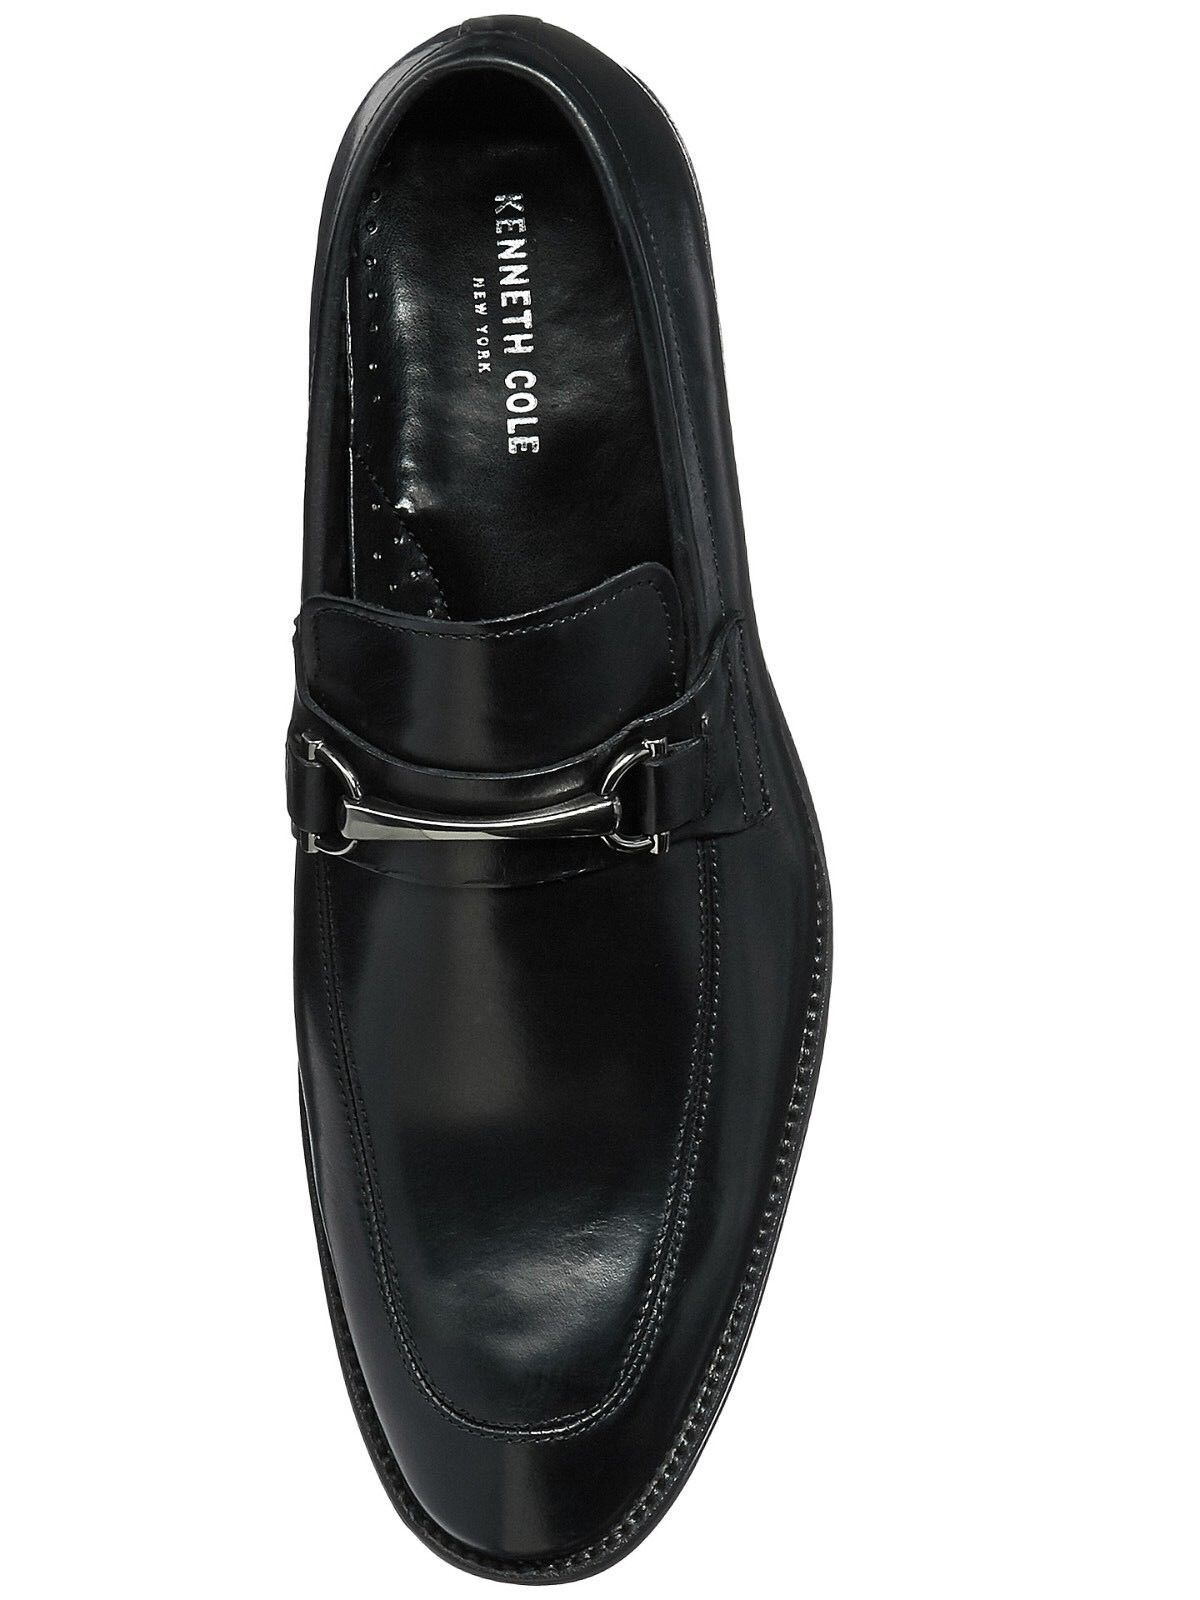 Kenneth Cole New York Uomo  Uomo York Gather-Ing Bit Business Casual Loafers Dress Schuhes ca41fb